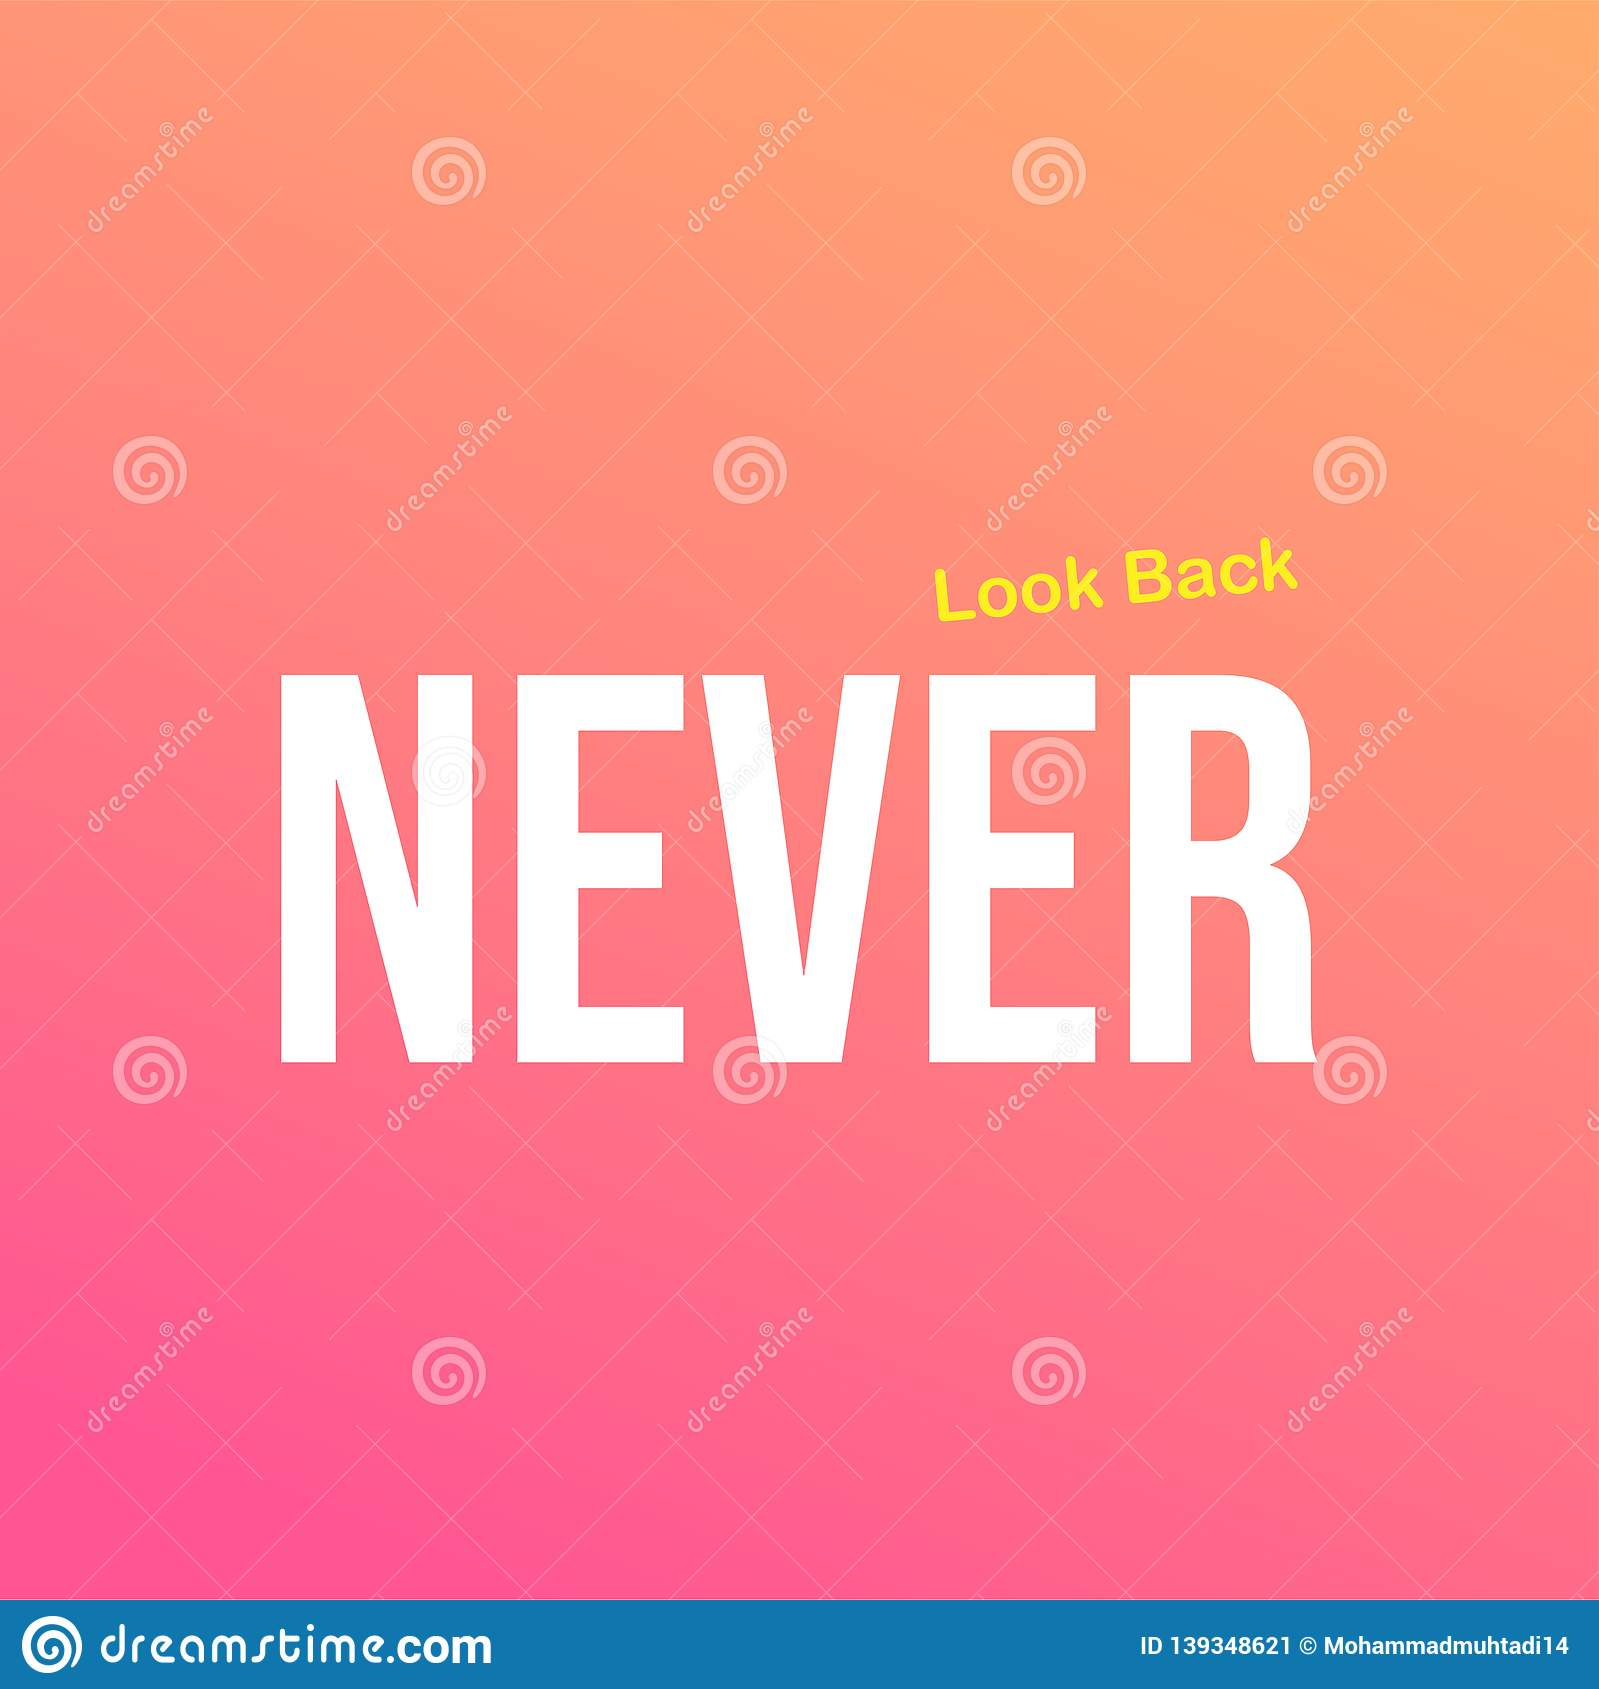 Never look back. Life quote with modern background vector